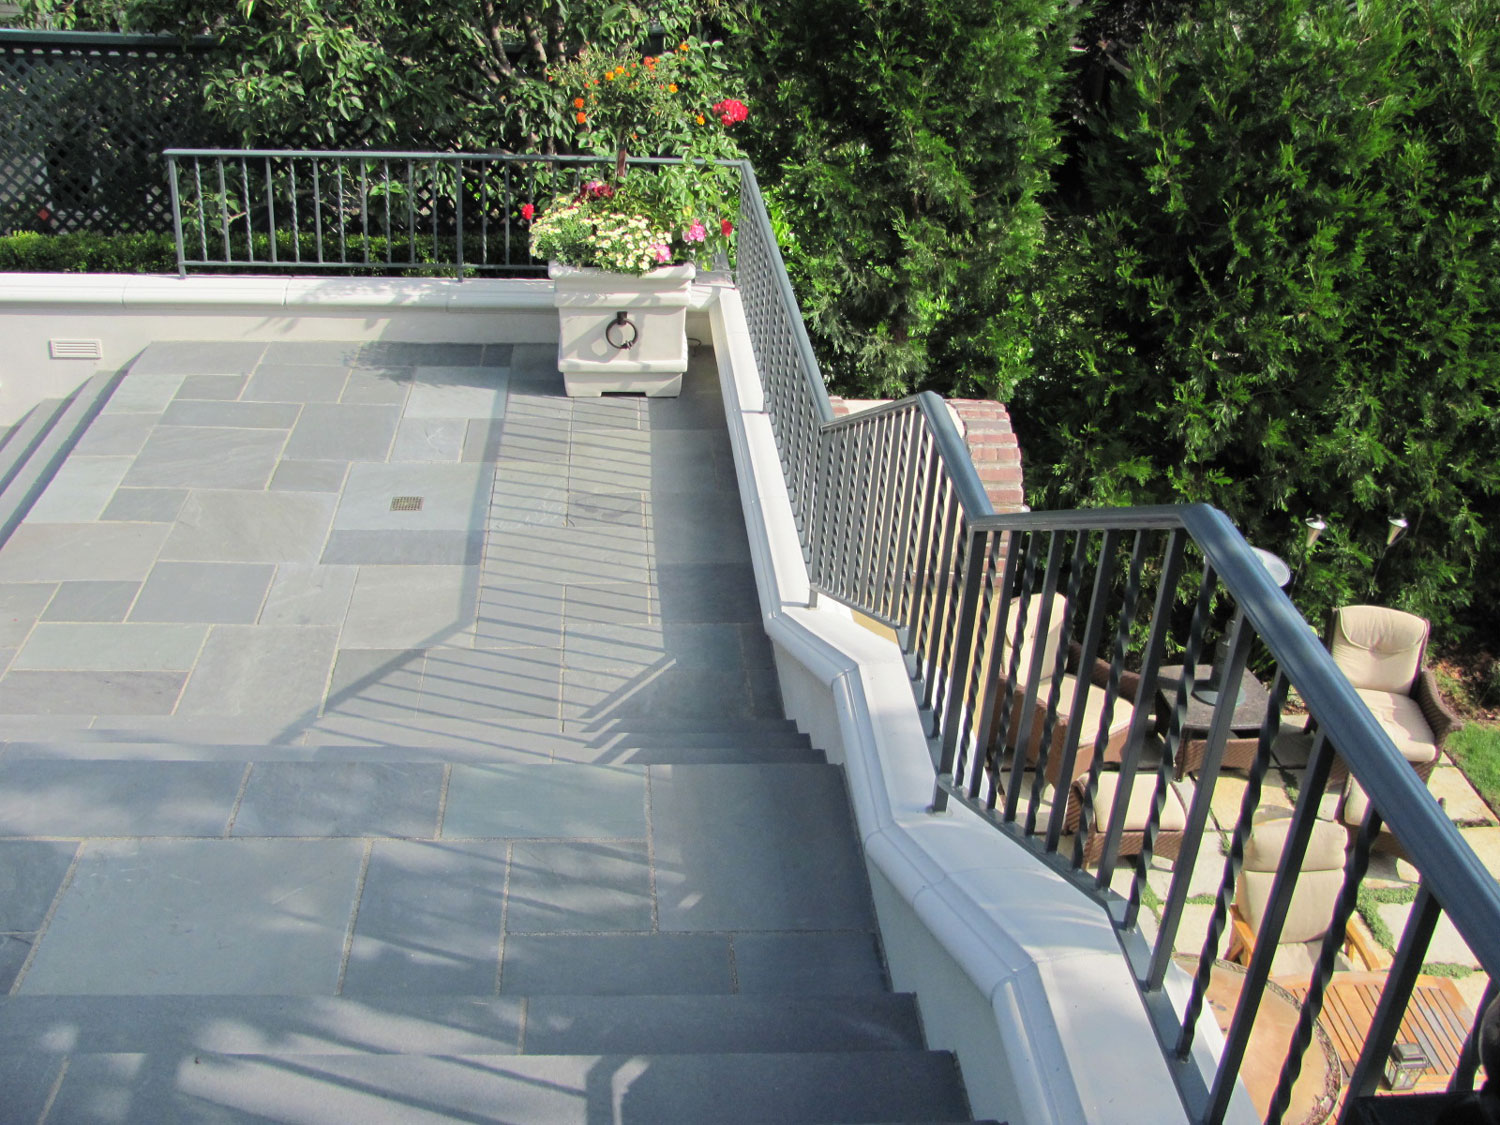 Iron Handrails and Guardrails for Slate Patio - Guardrail for Stairs - Seattle, WA